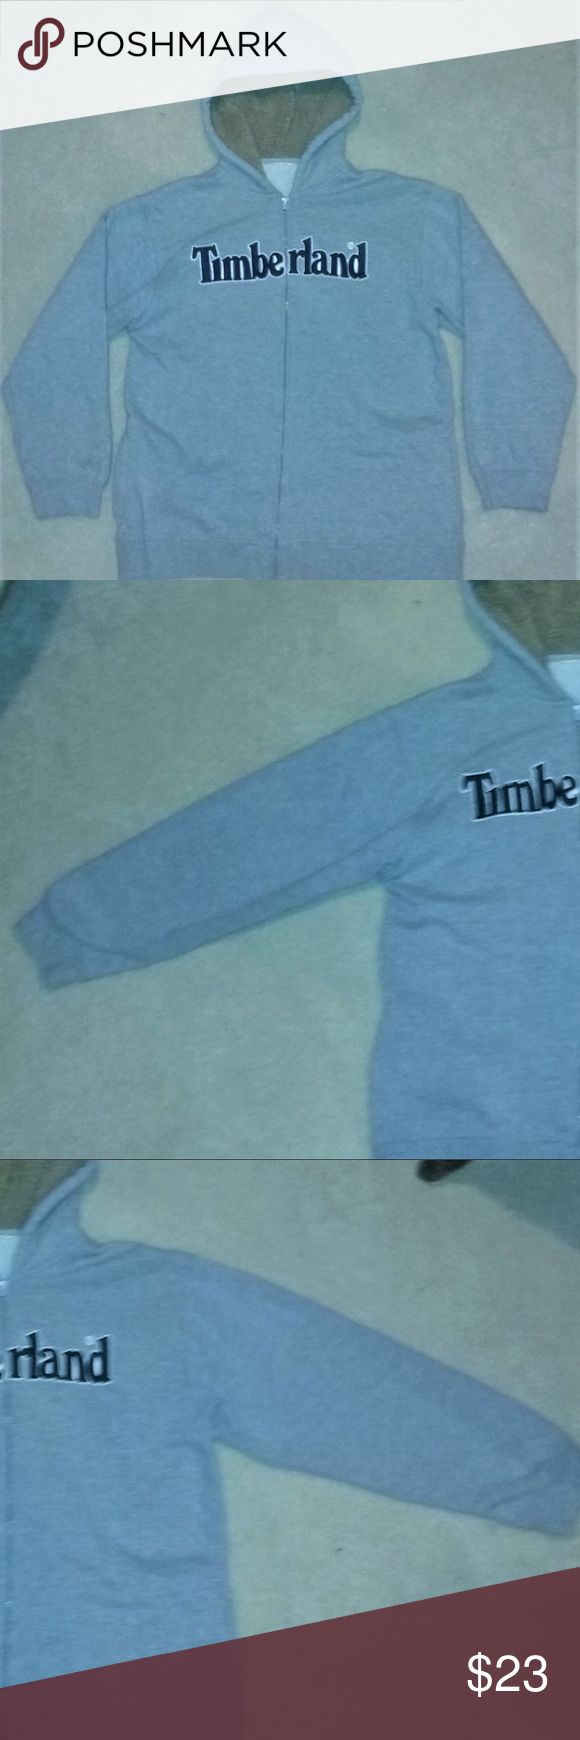 Timberland Spell Out Logo Gray Hooded Jacket Large This Timberland jacket is in great pre-owned condition! Free of stains, holes, and odors. Timberland Jackets & Coats